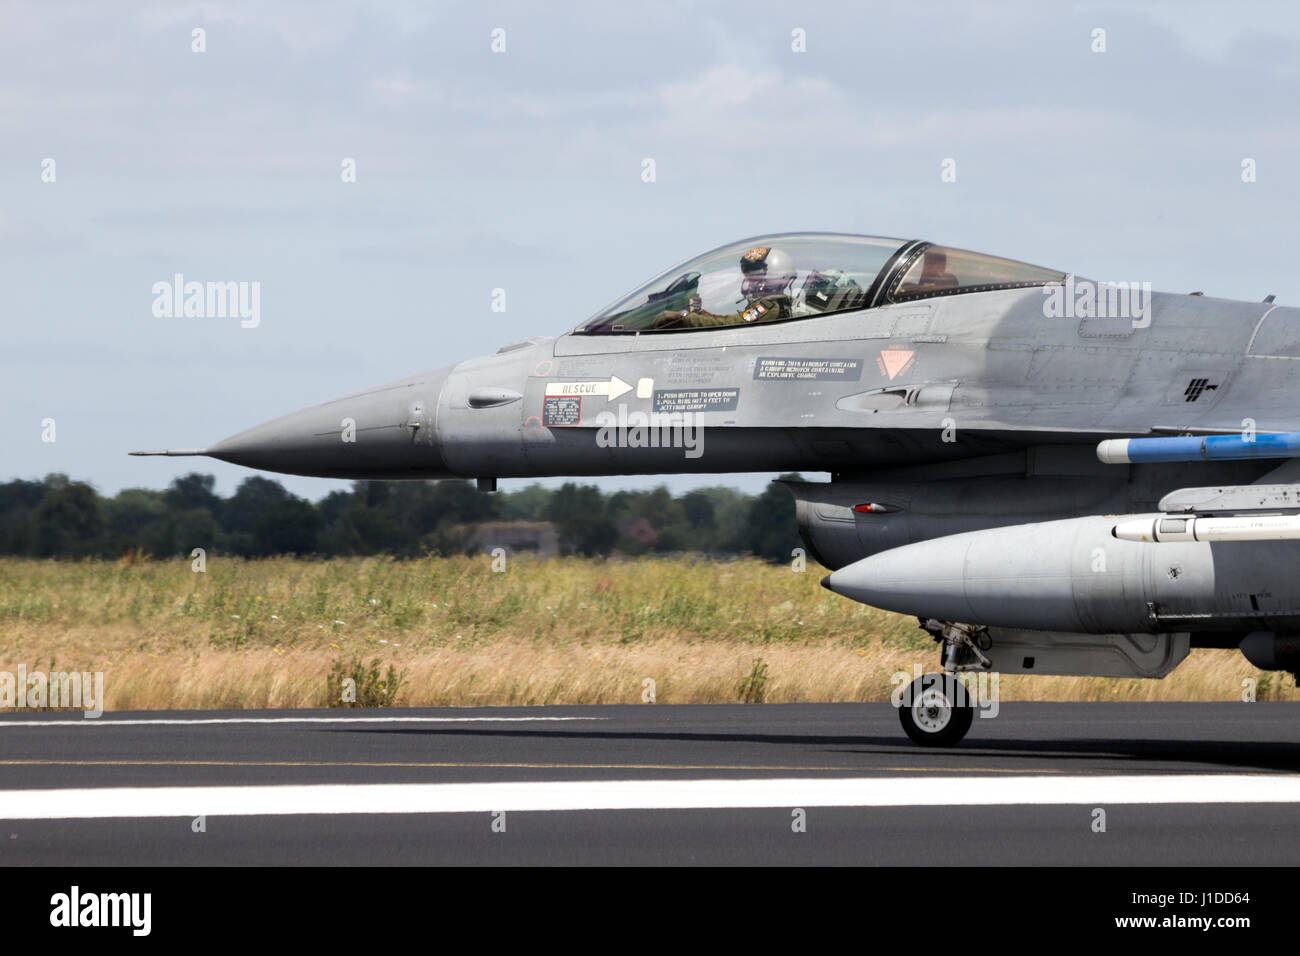 SCHLESWIG-JAGEL,  GERMANY - JUN 23, 2014: Lockheed Martin F-16 fighter jet plane on the runway during the NATO Tiger - Stock Image